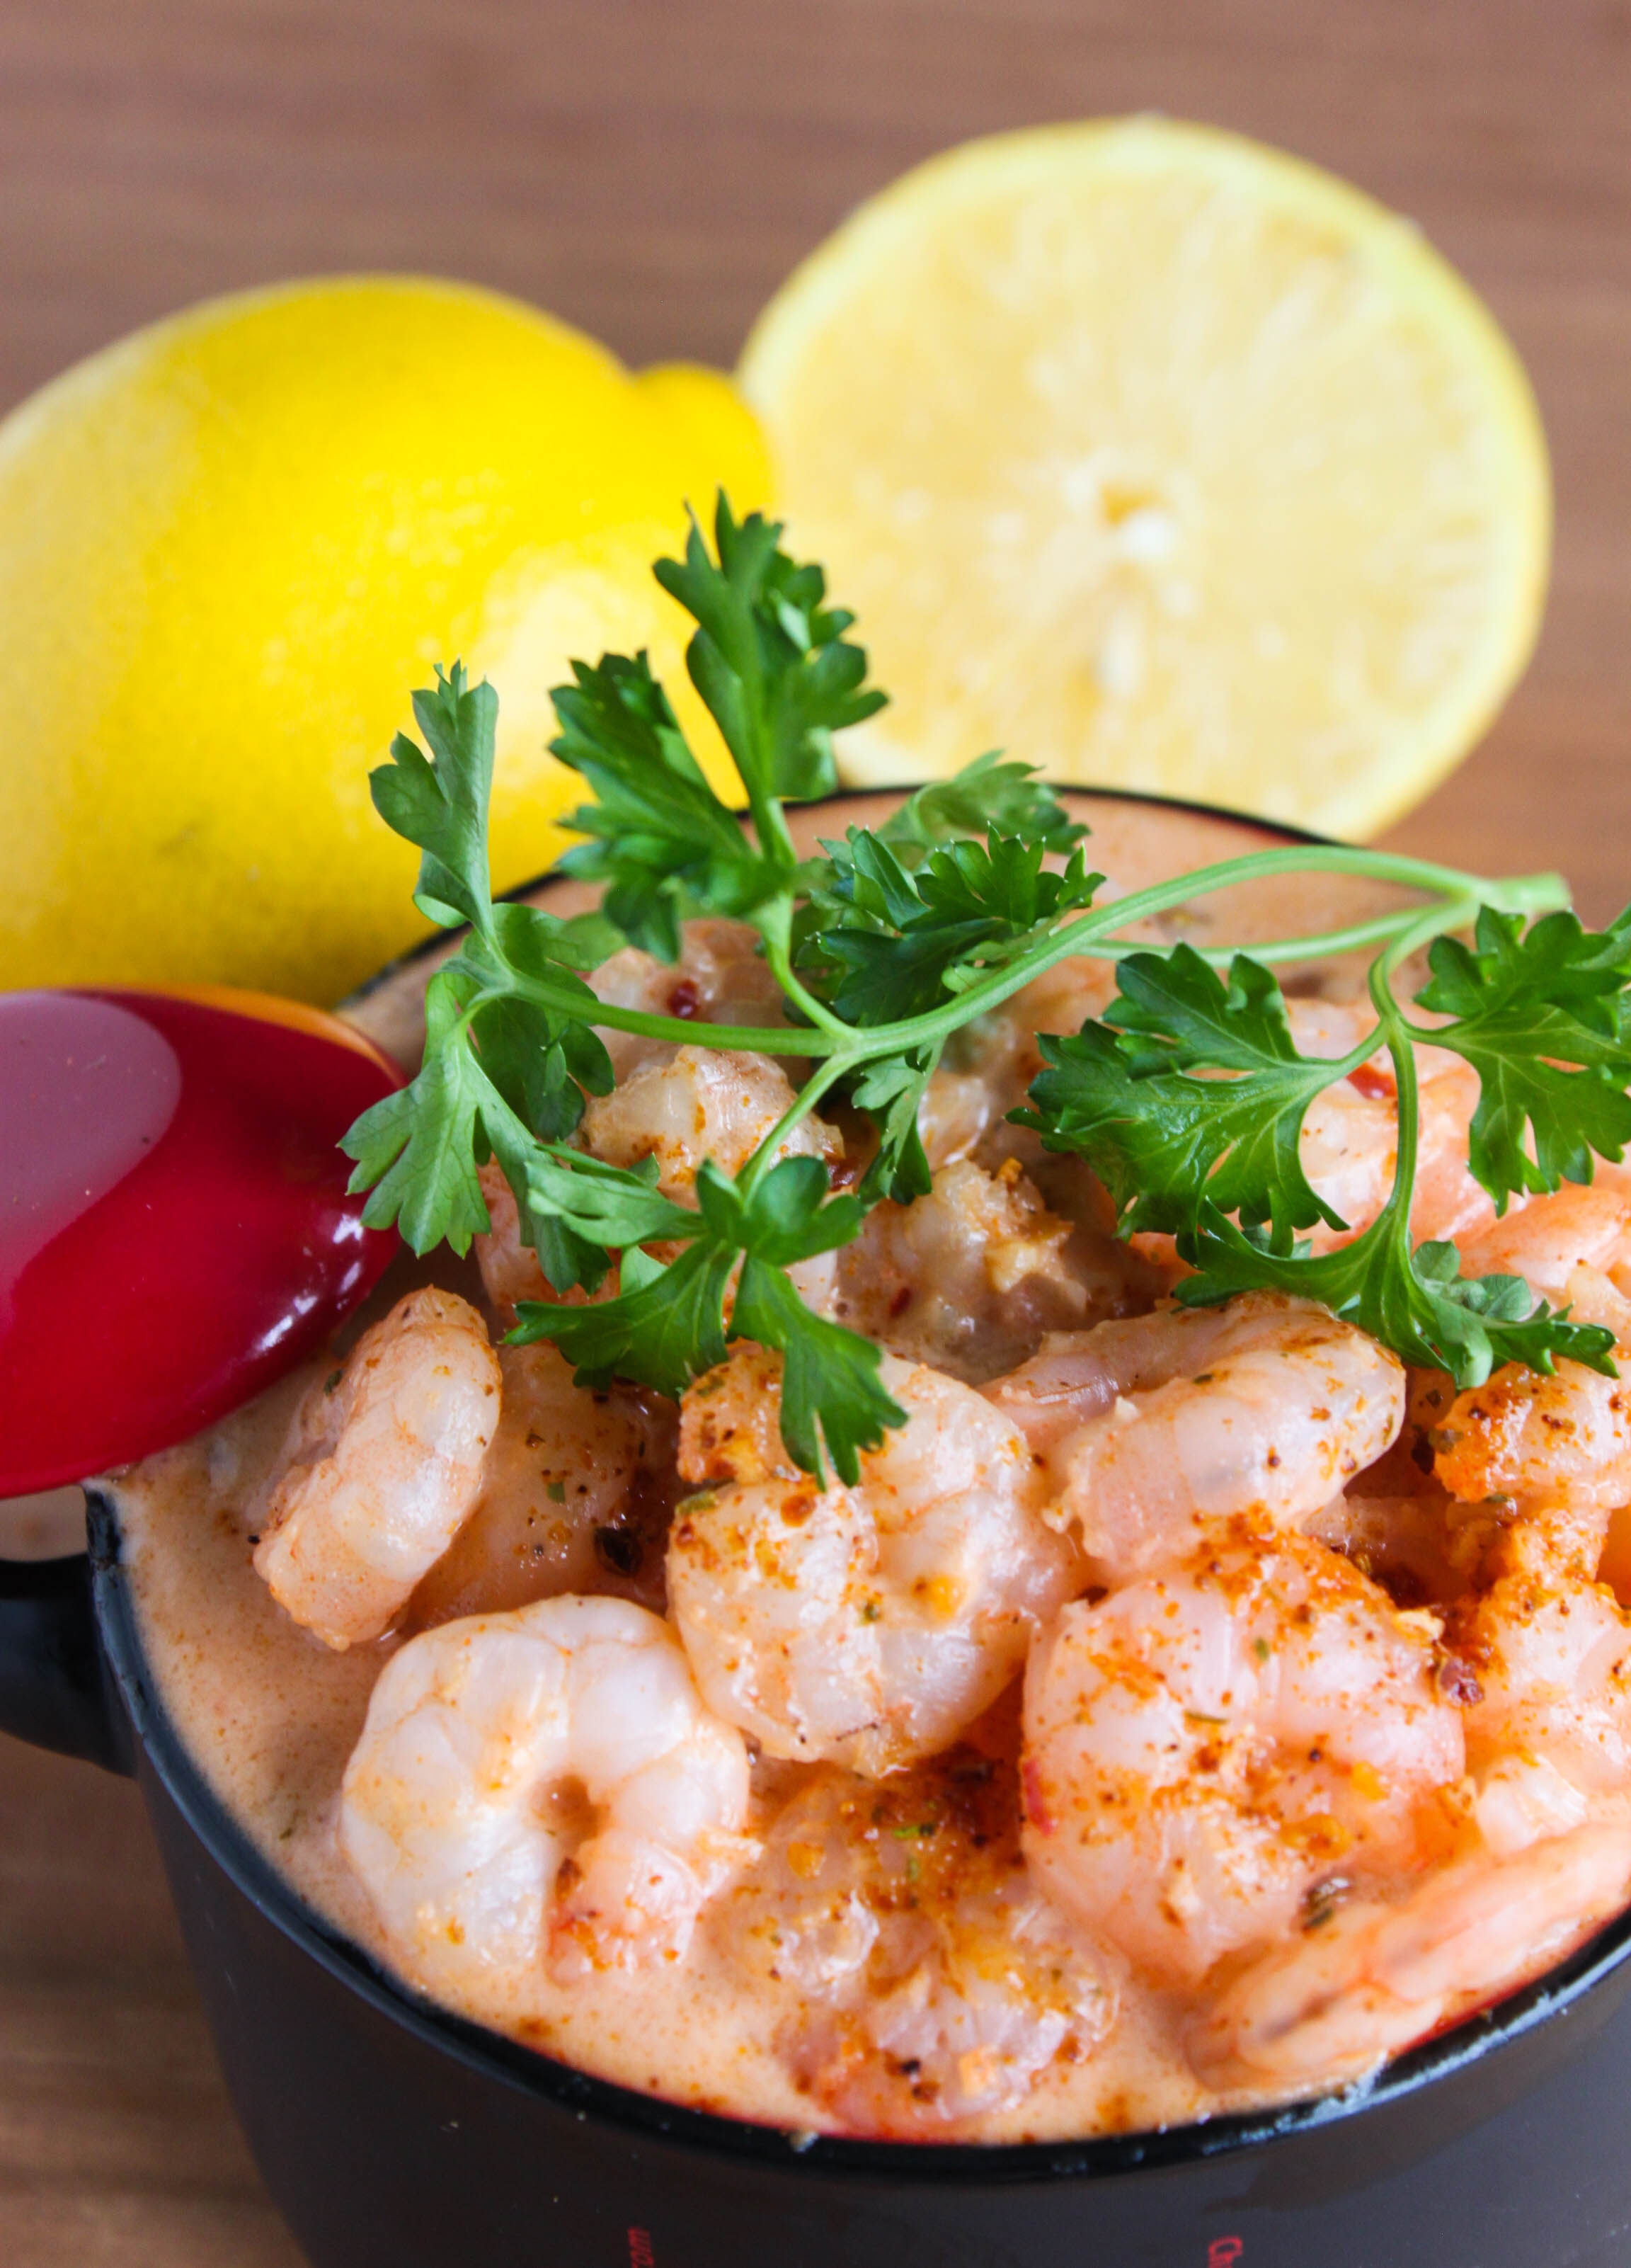 Spicy Shrimp in a Creamy Sauce. Piquant and easy to prepare.